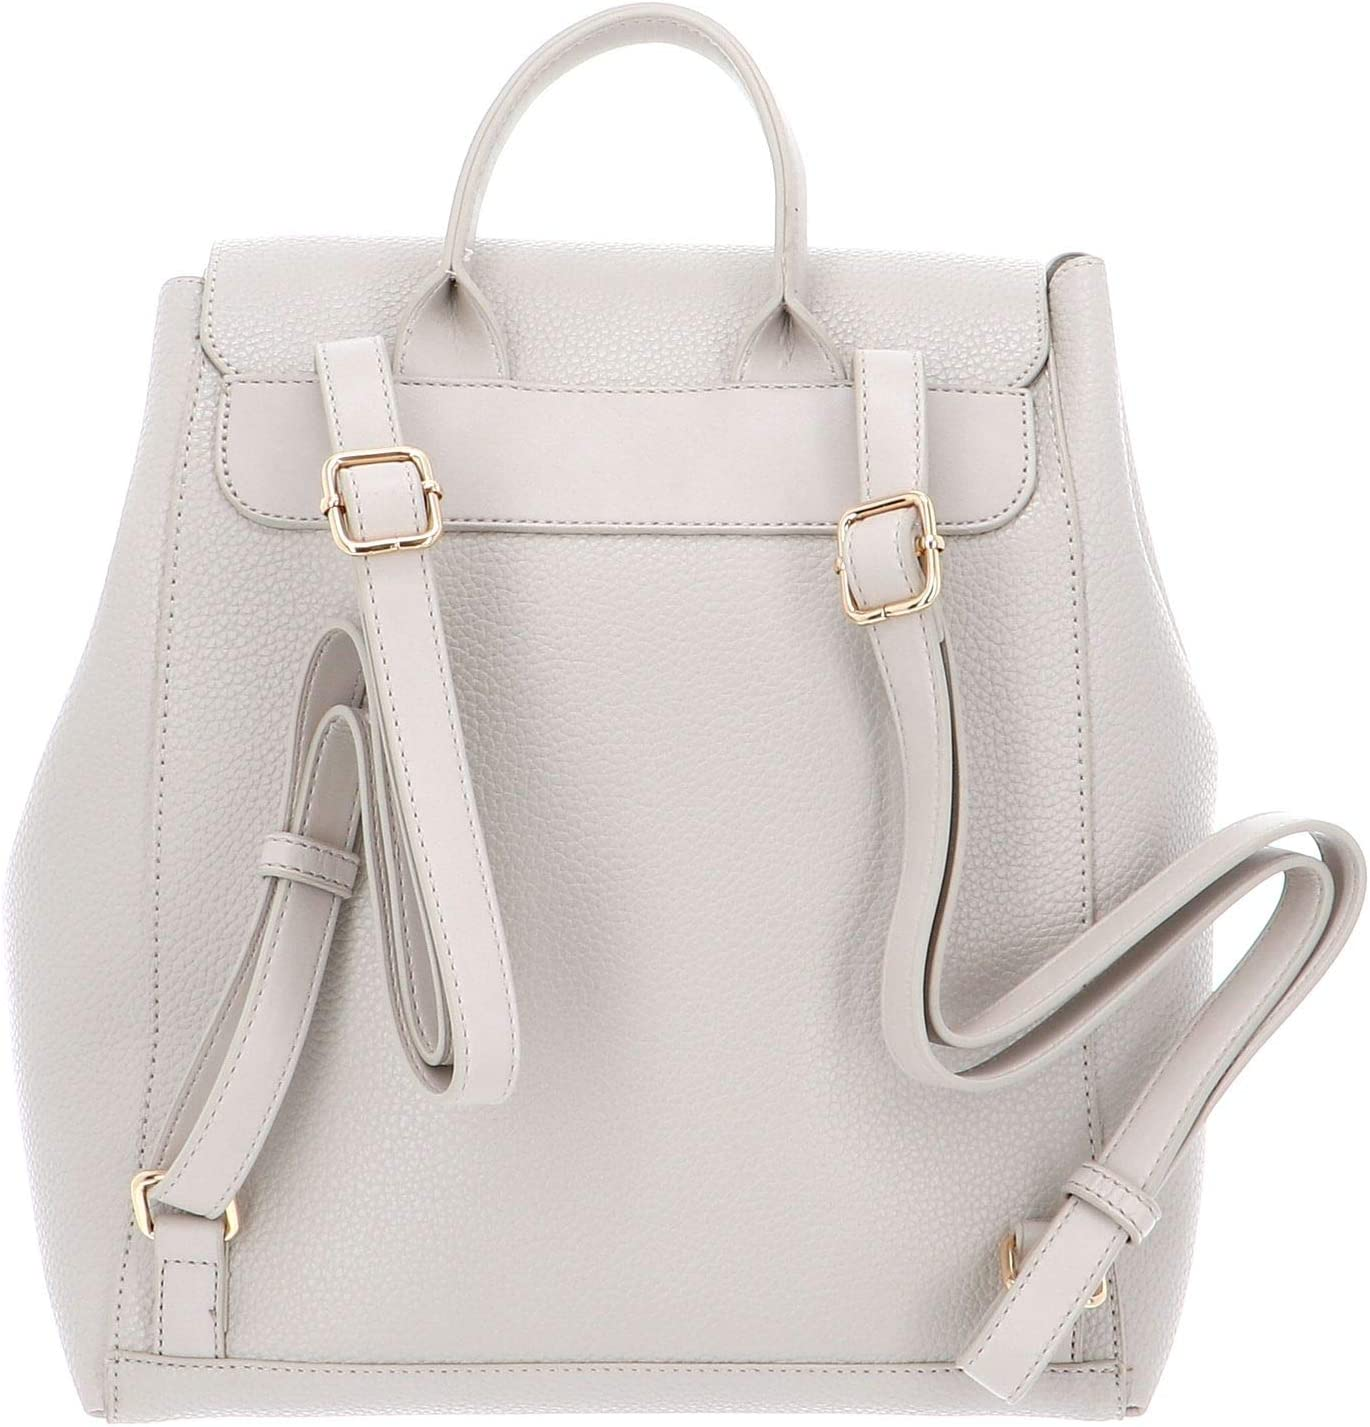 Ghiaccio One Size Valentino by Mario Valentino Womens Daypack Backpacks